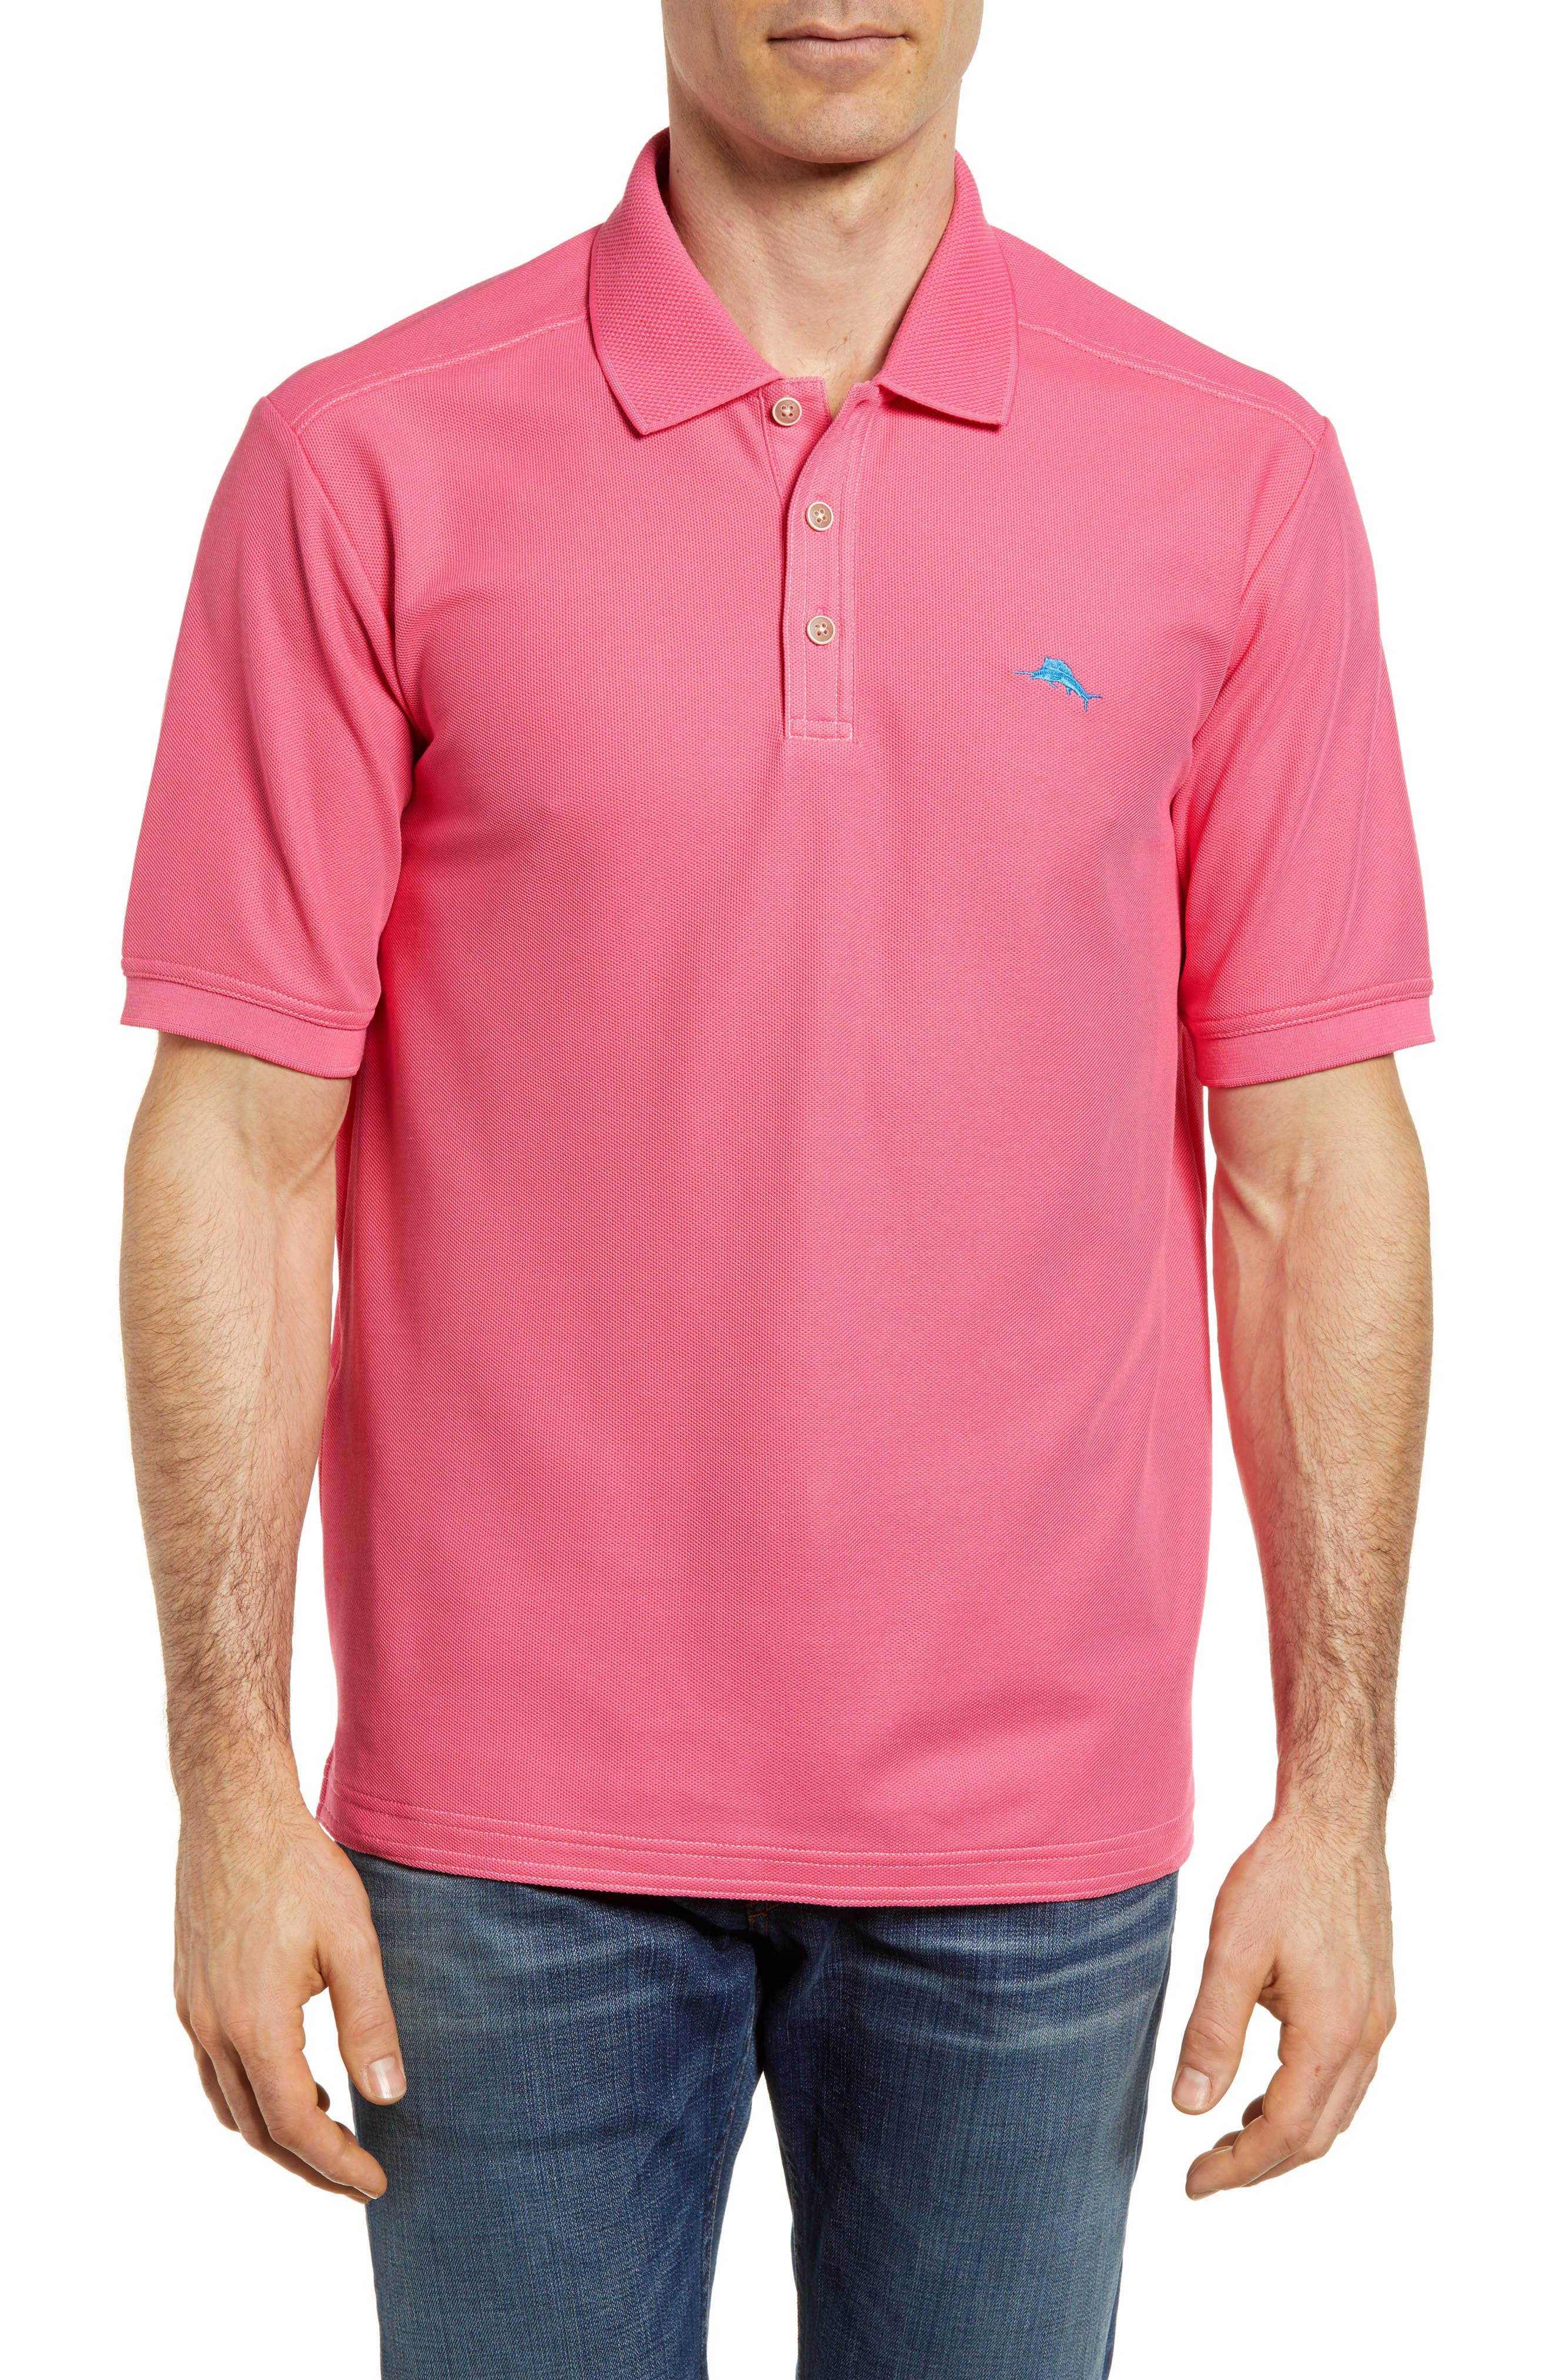 Main Image - Tommy Bahama 'The Emfielder' Original Fit Piqué Polo